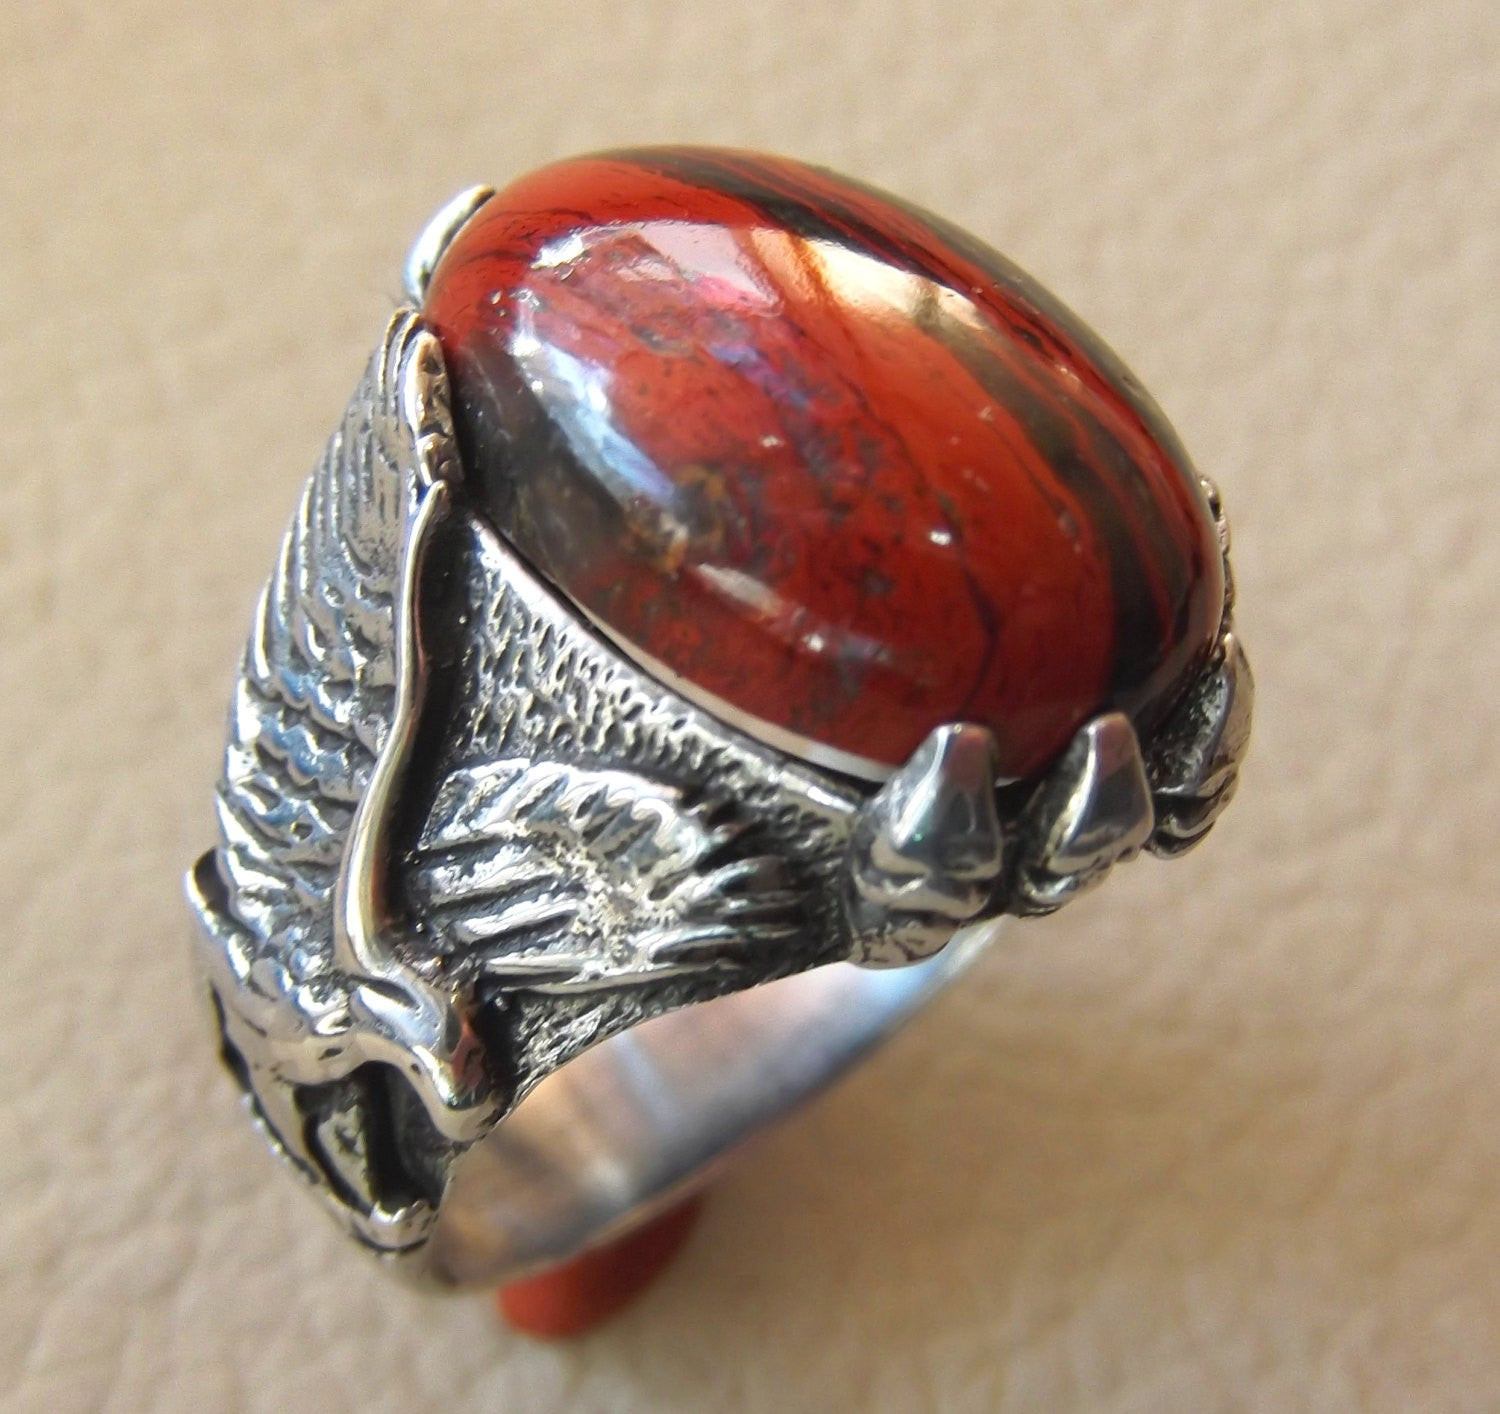 b27d6228e44a0 snake skin jasper stone natural gem sterling silver 925 ring red and black  oval semi precious cabochon man eagle ring jewelry fast shipping